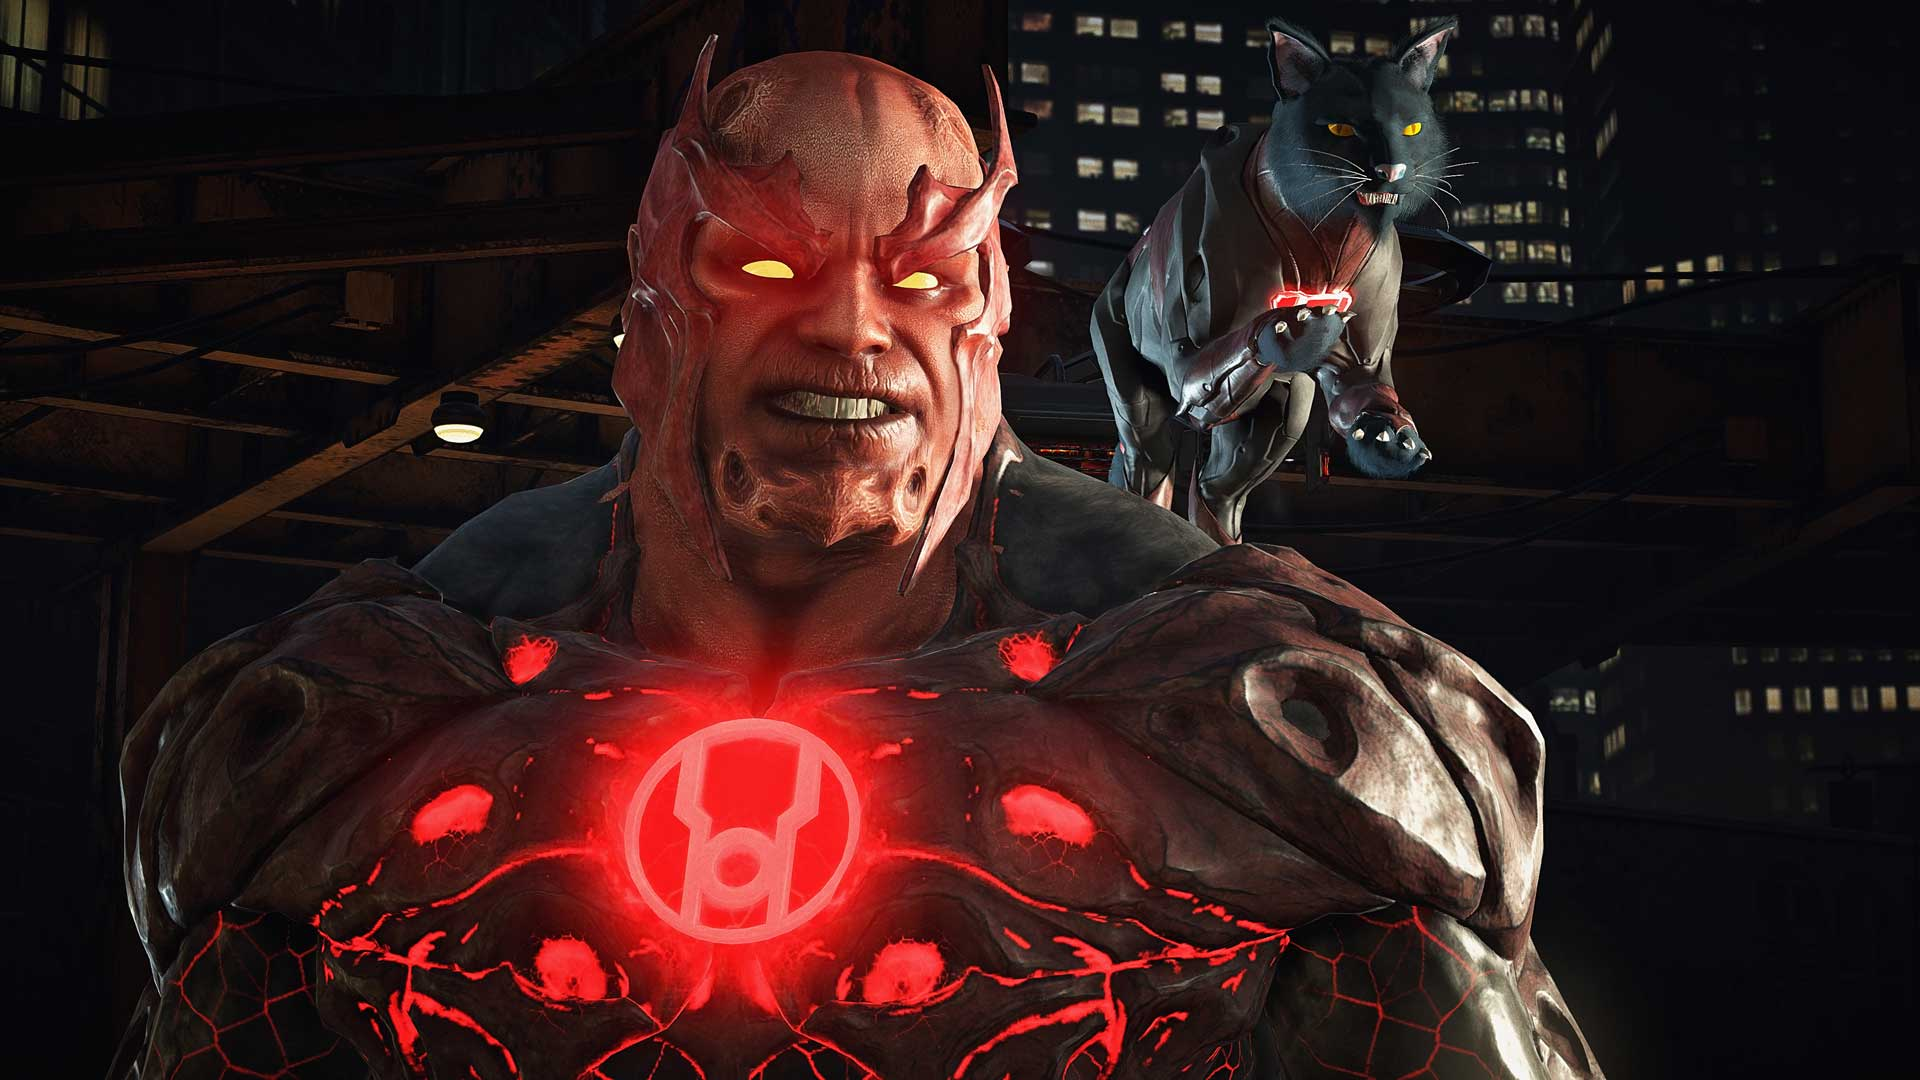 Find the best laptop for Injustice 2